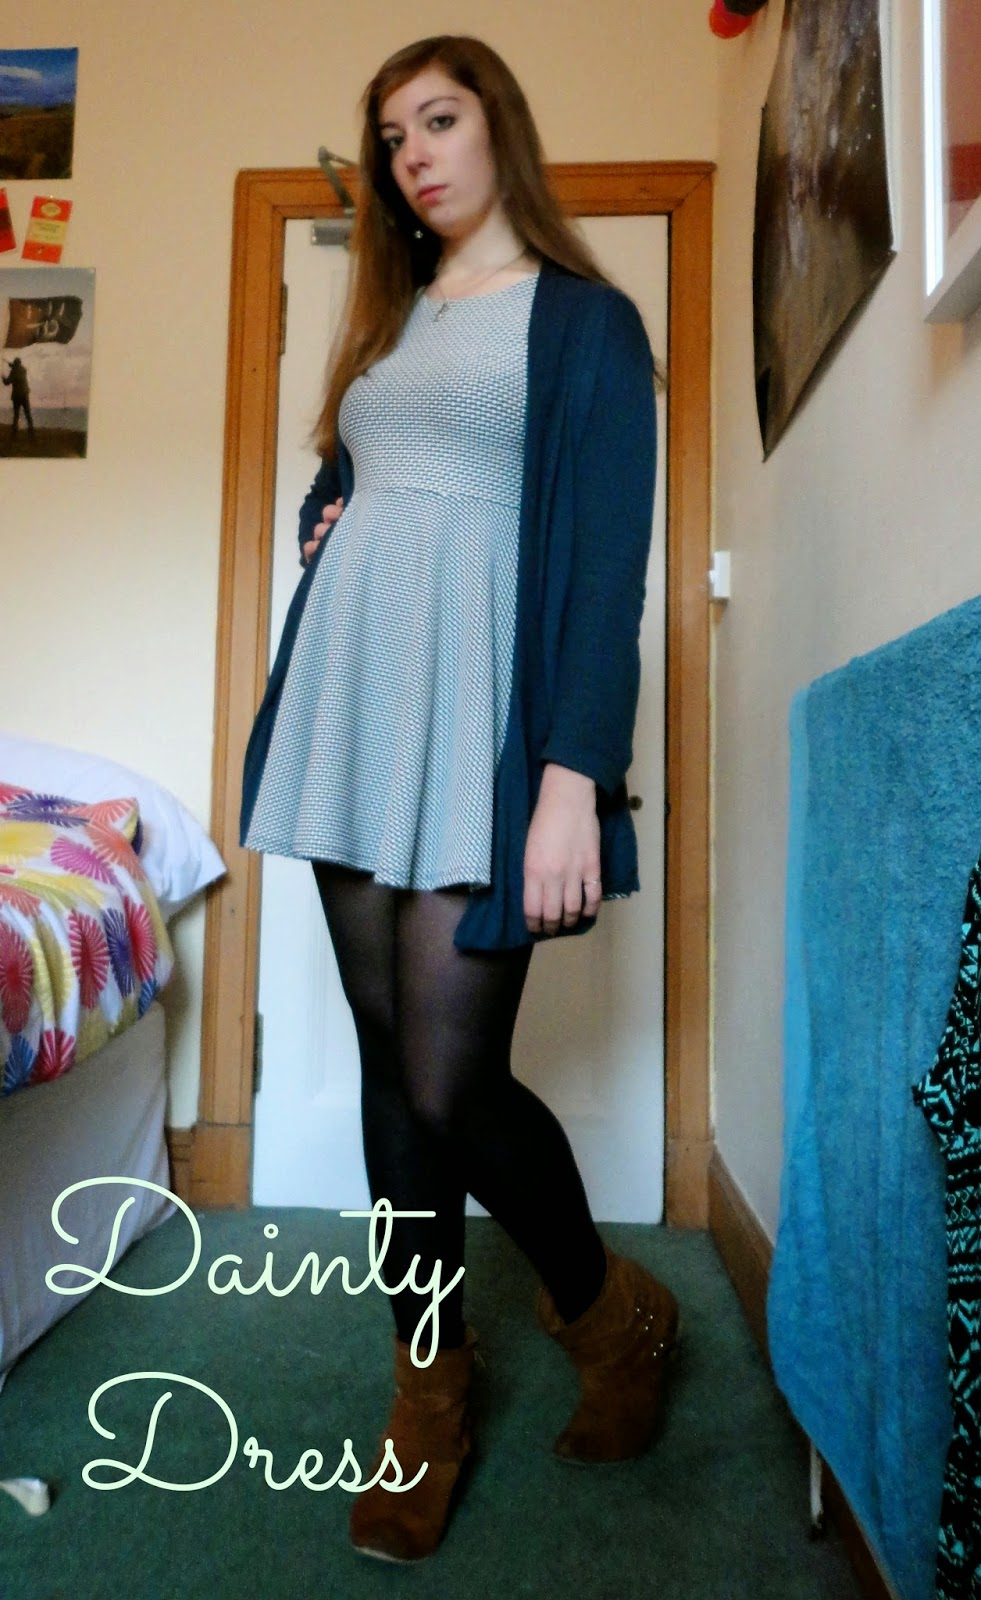 Dainty black & white dress with blue cardigans & brown ankle boots winter outfit